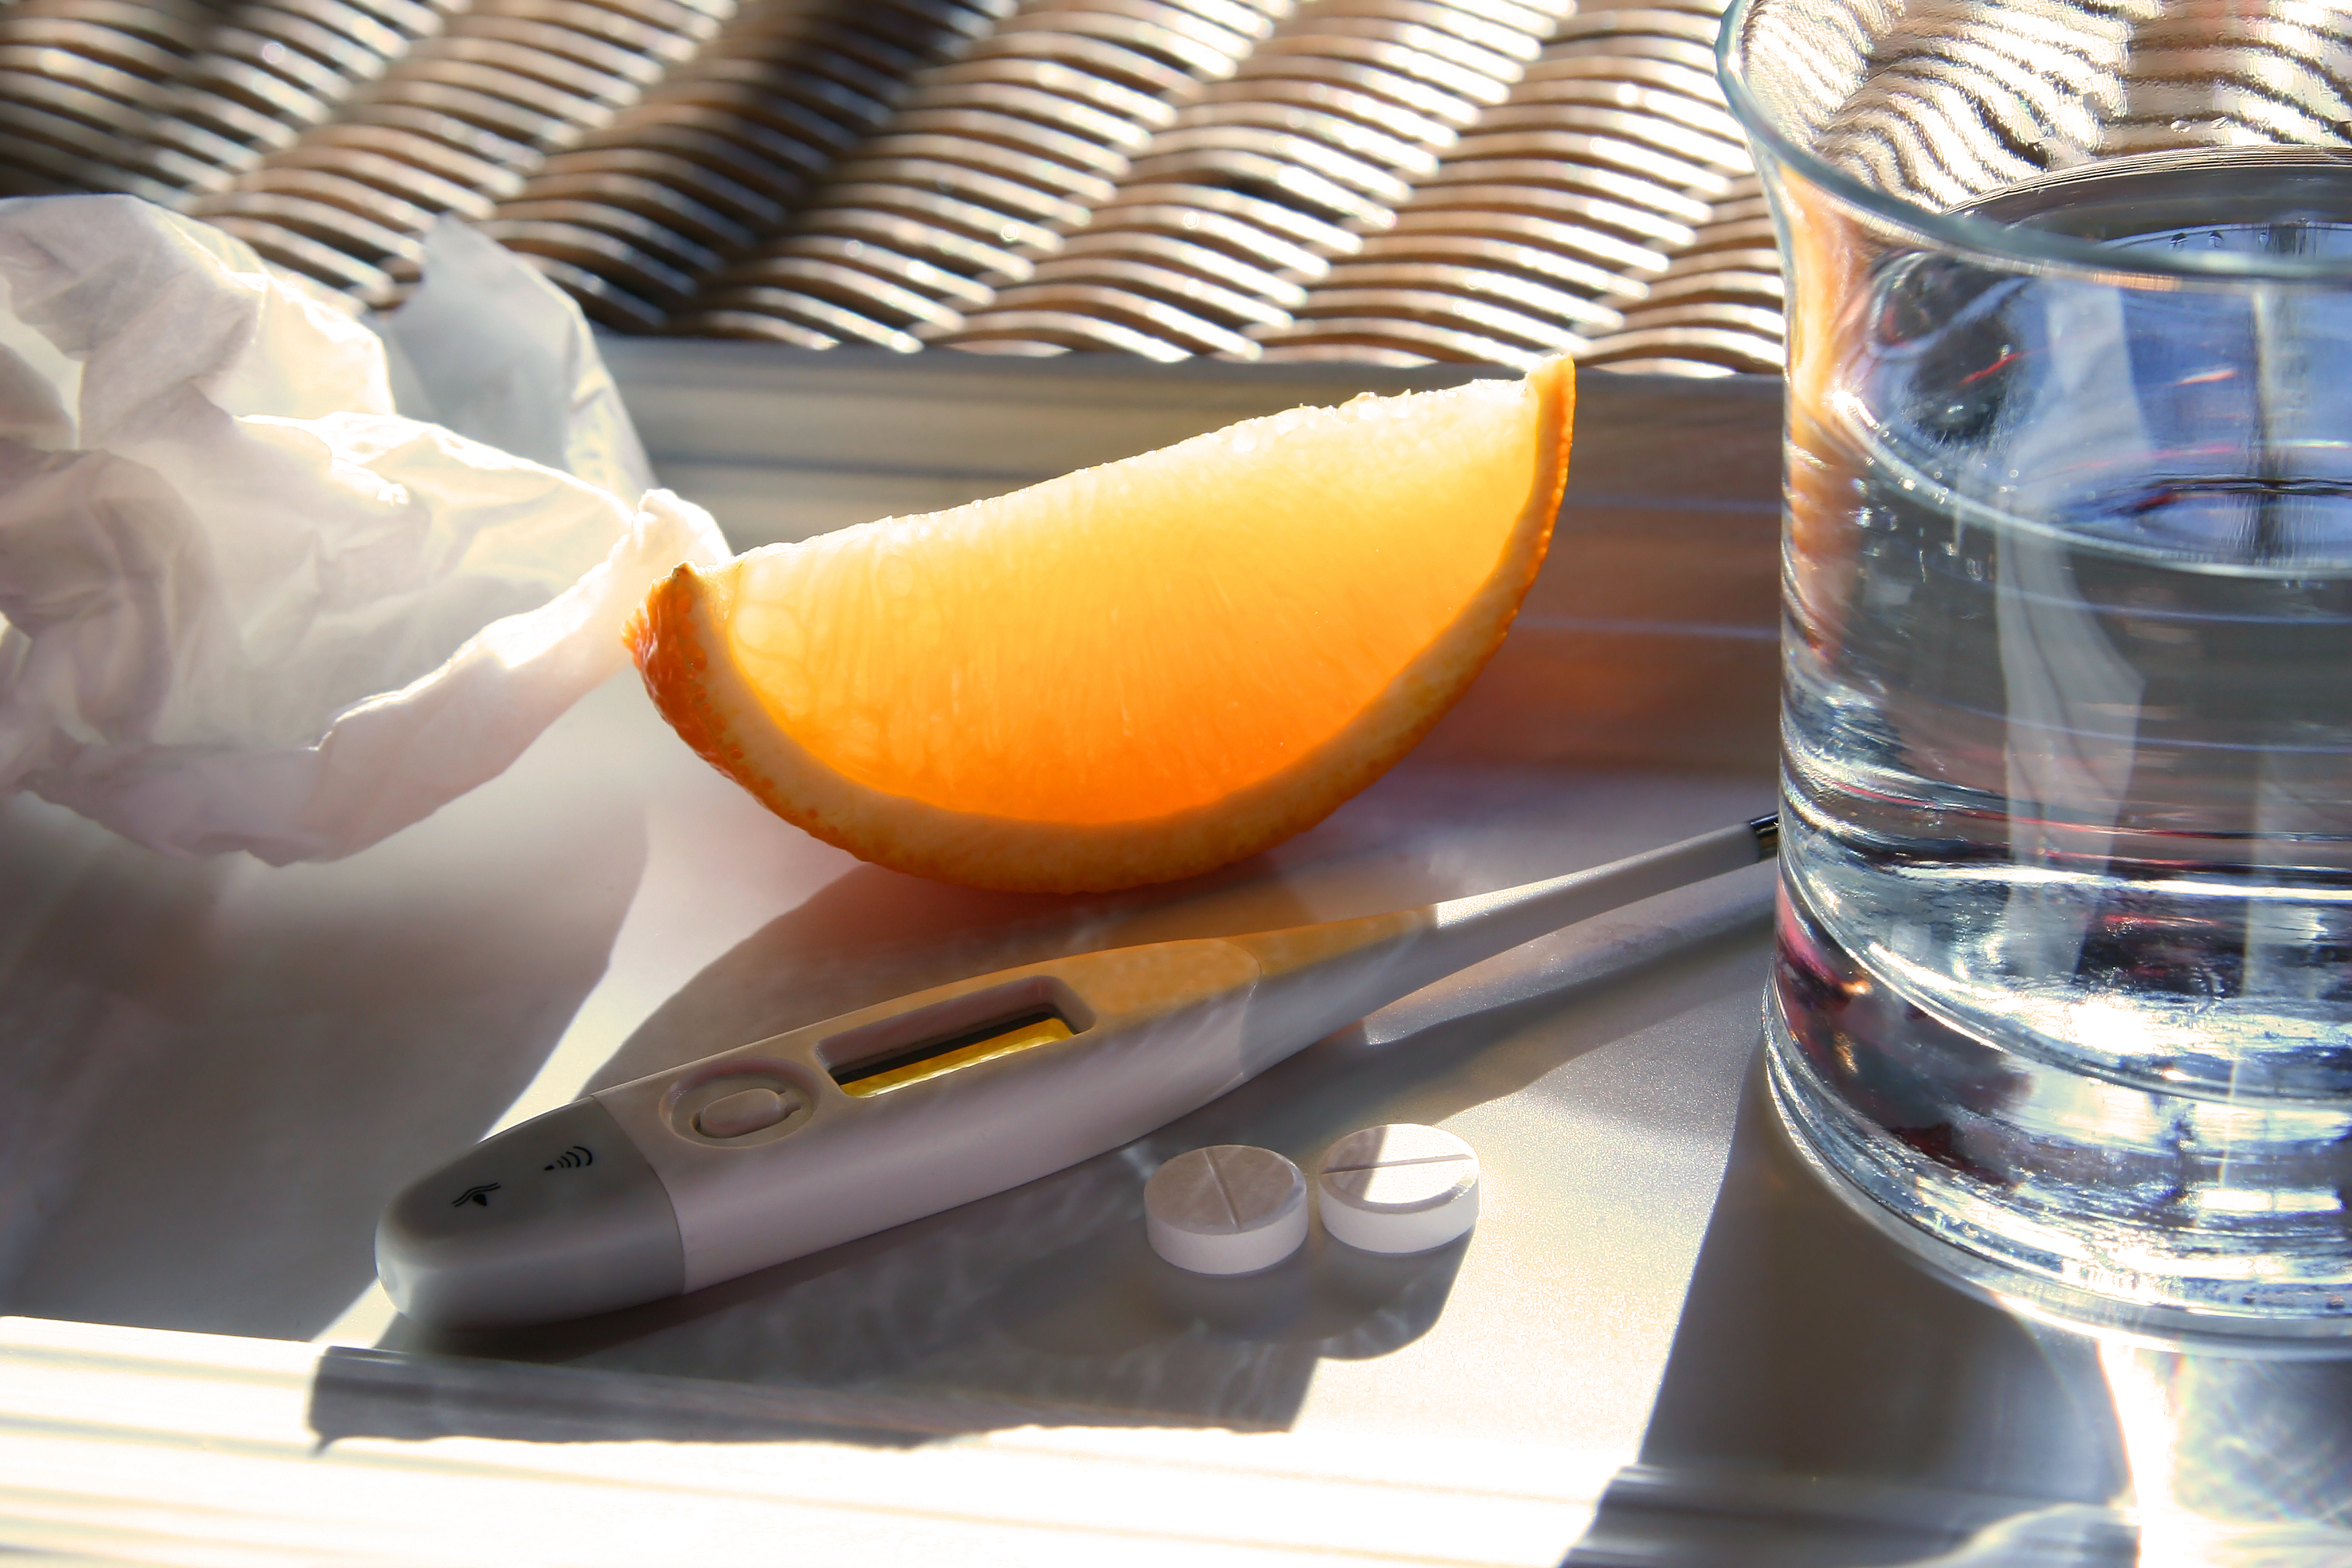 Tissue, orange wedge,water glass, thermometer and cold pills for relief of flu symptoms